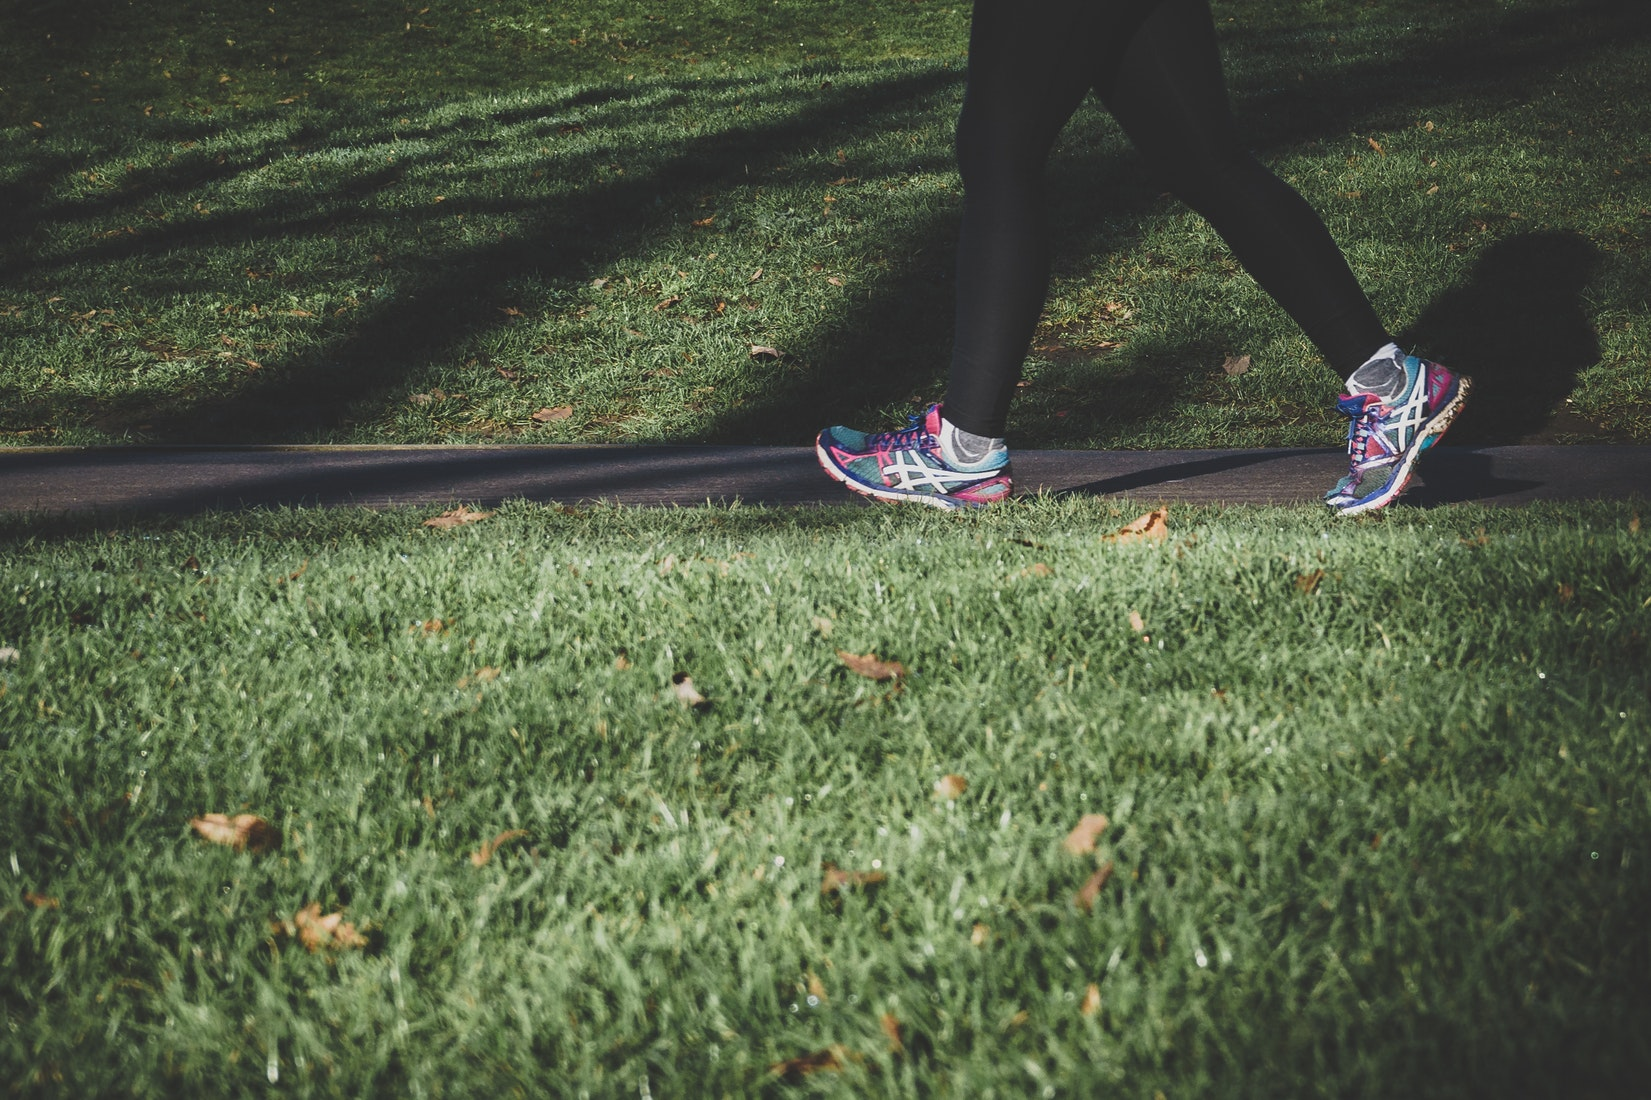 A quick workout may give your brain the extra power it needs.